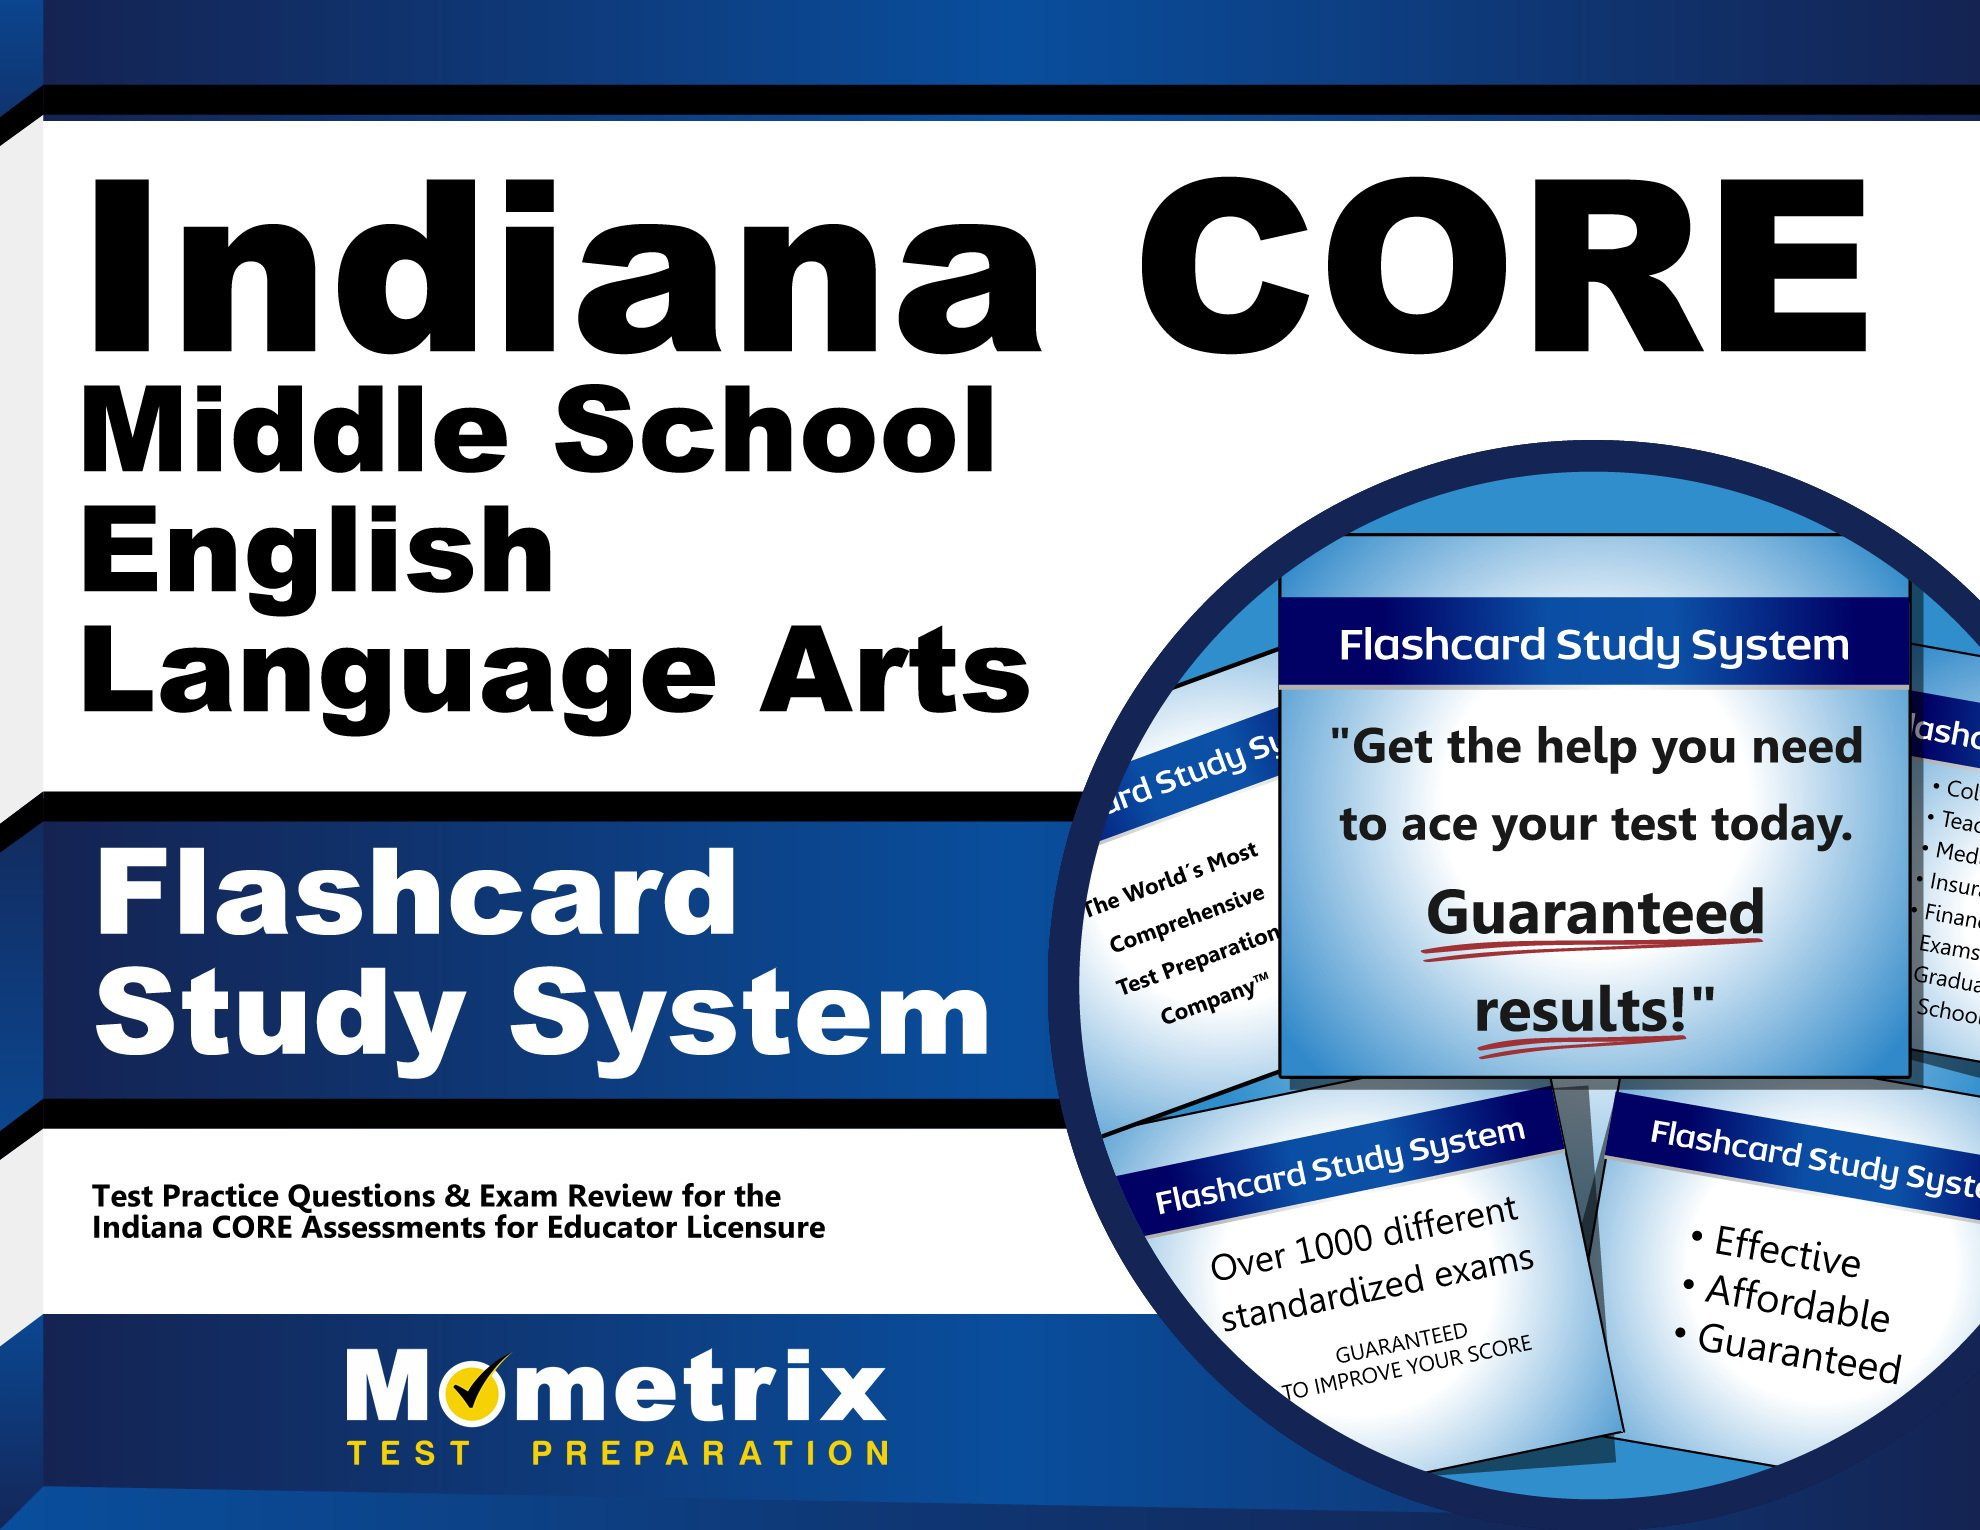 Indiana CORE Middle School English Language Arts Flashcard Study System: Indiana CORE Test Practice Questions & Exam Review for the Indiana CORE Assessments for Educator Licensure by Mometrix Test Preparation